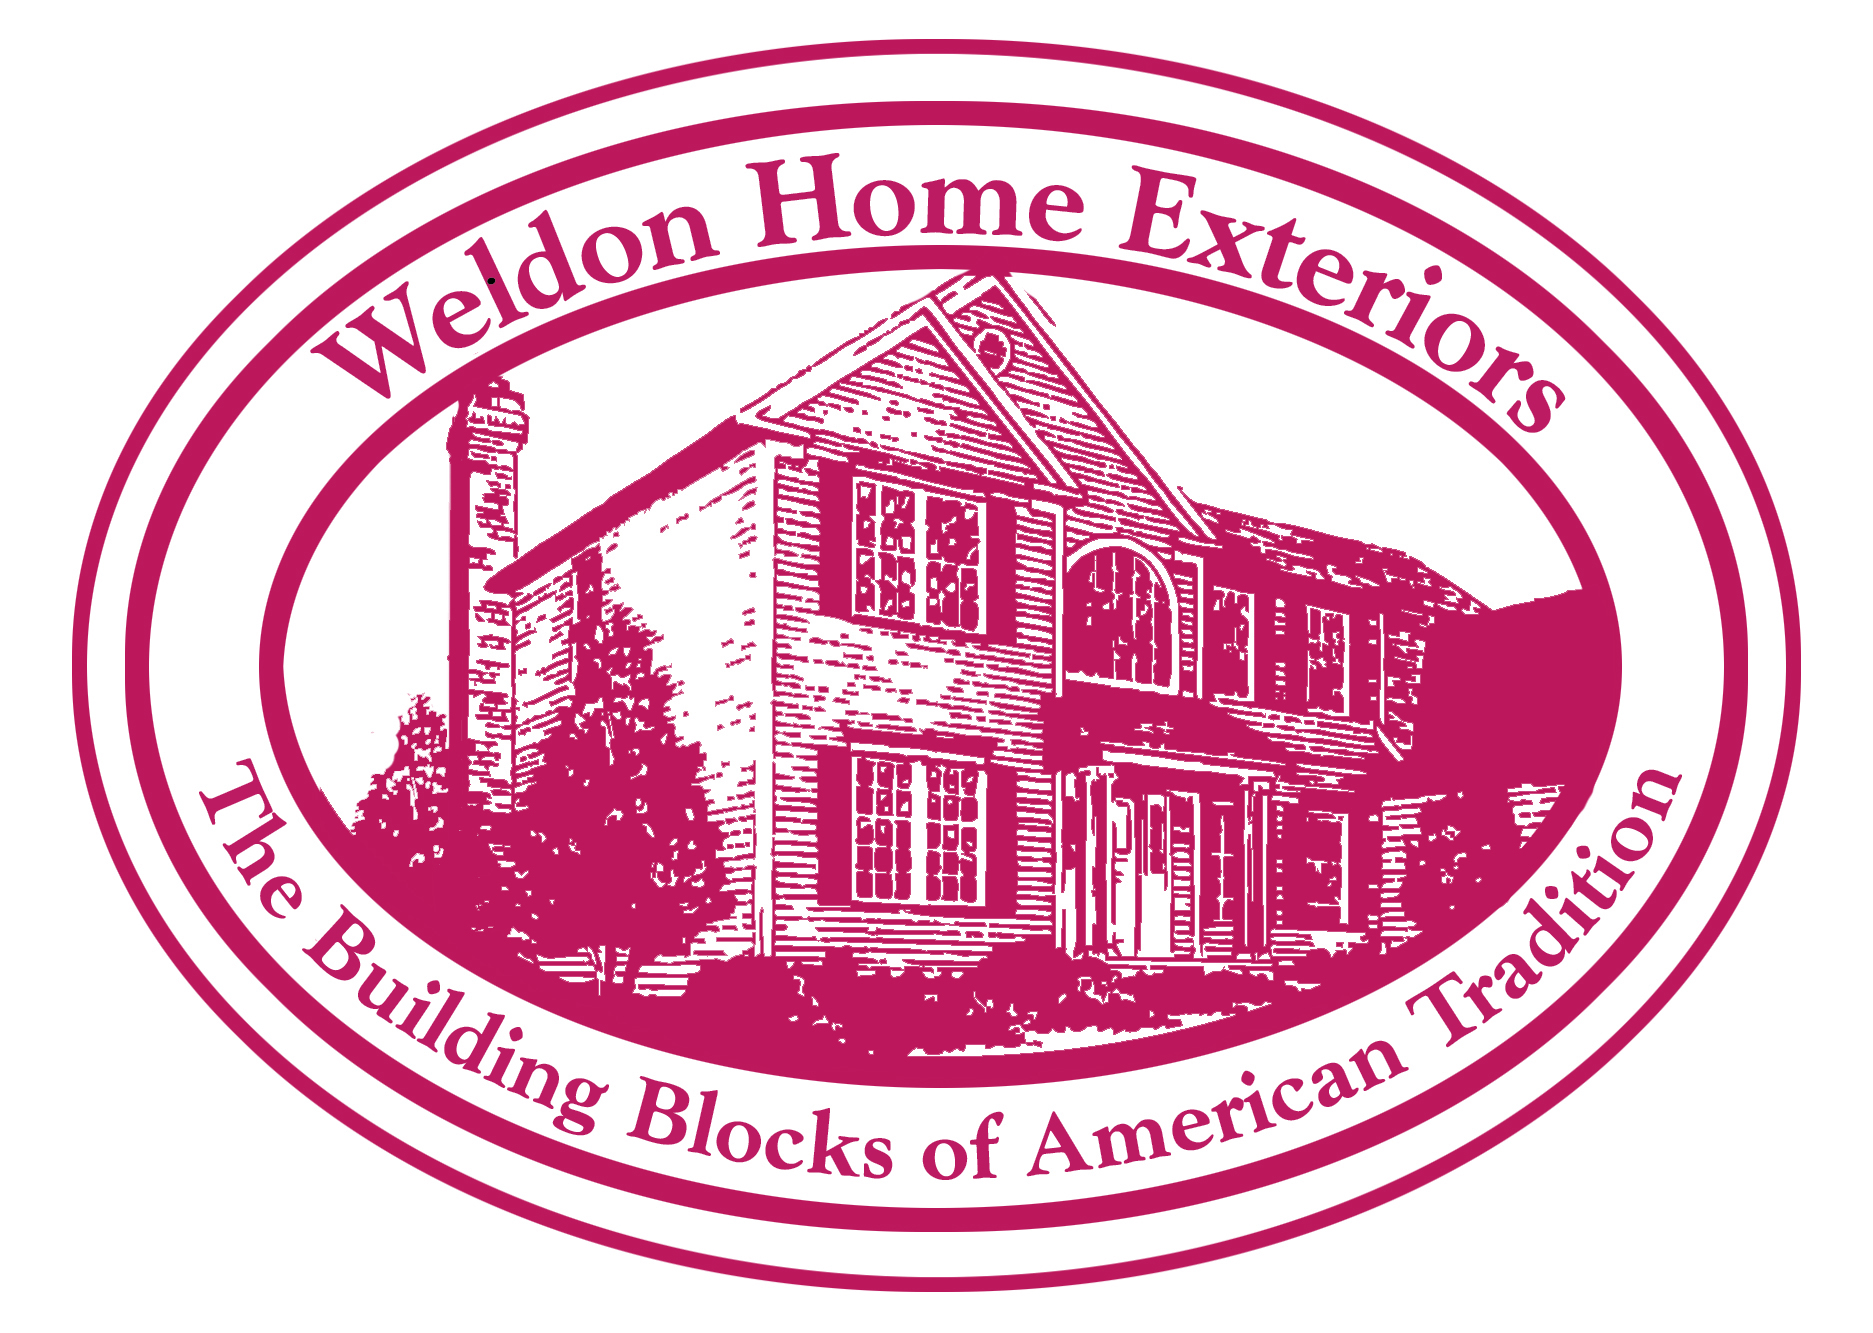 Weldon Home Exteriors